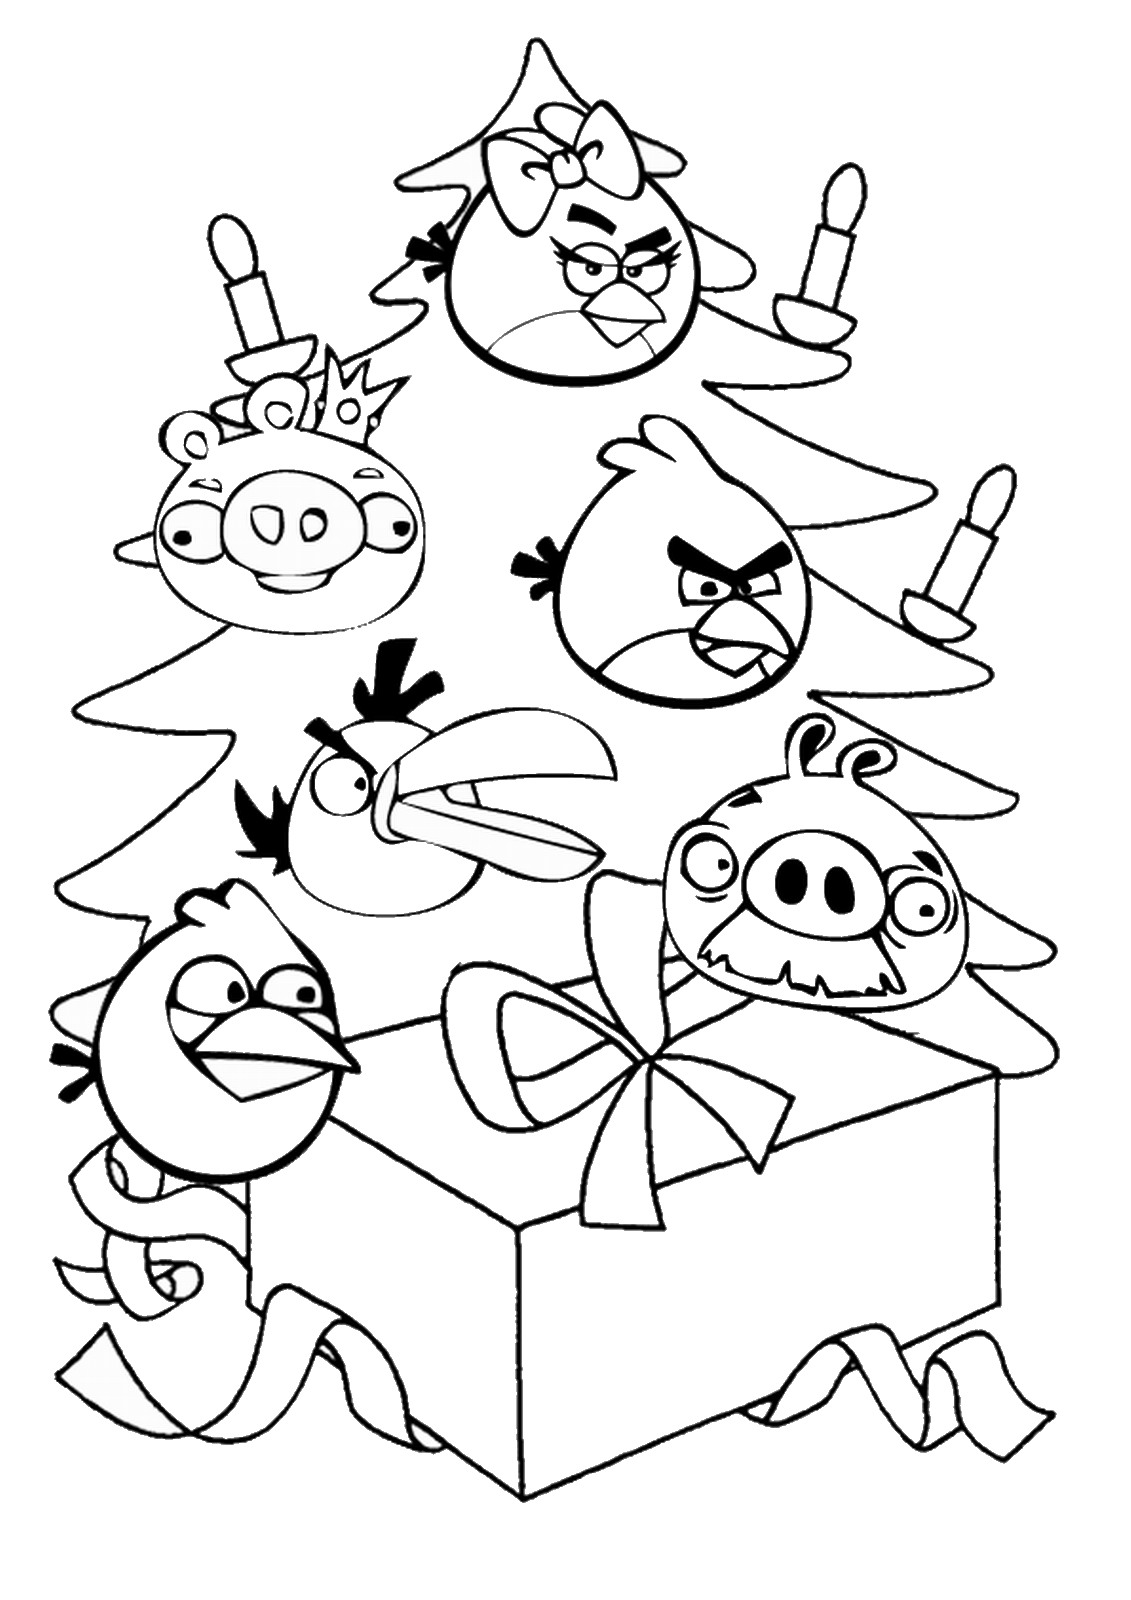 angry birds coloring pages angry birds coloring pages birthday printable coloring angry pages birds